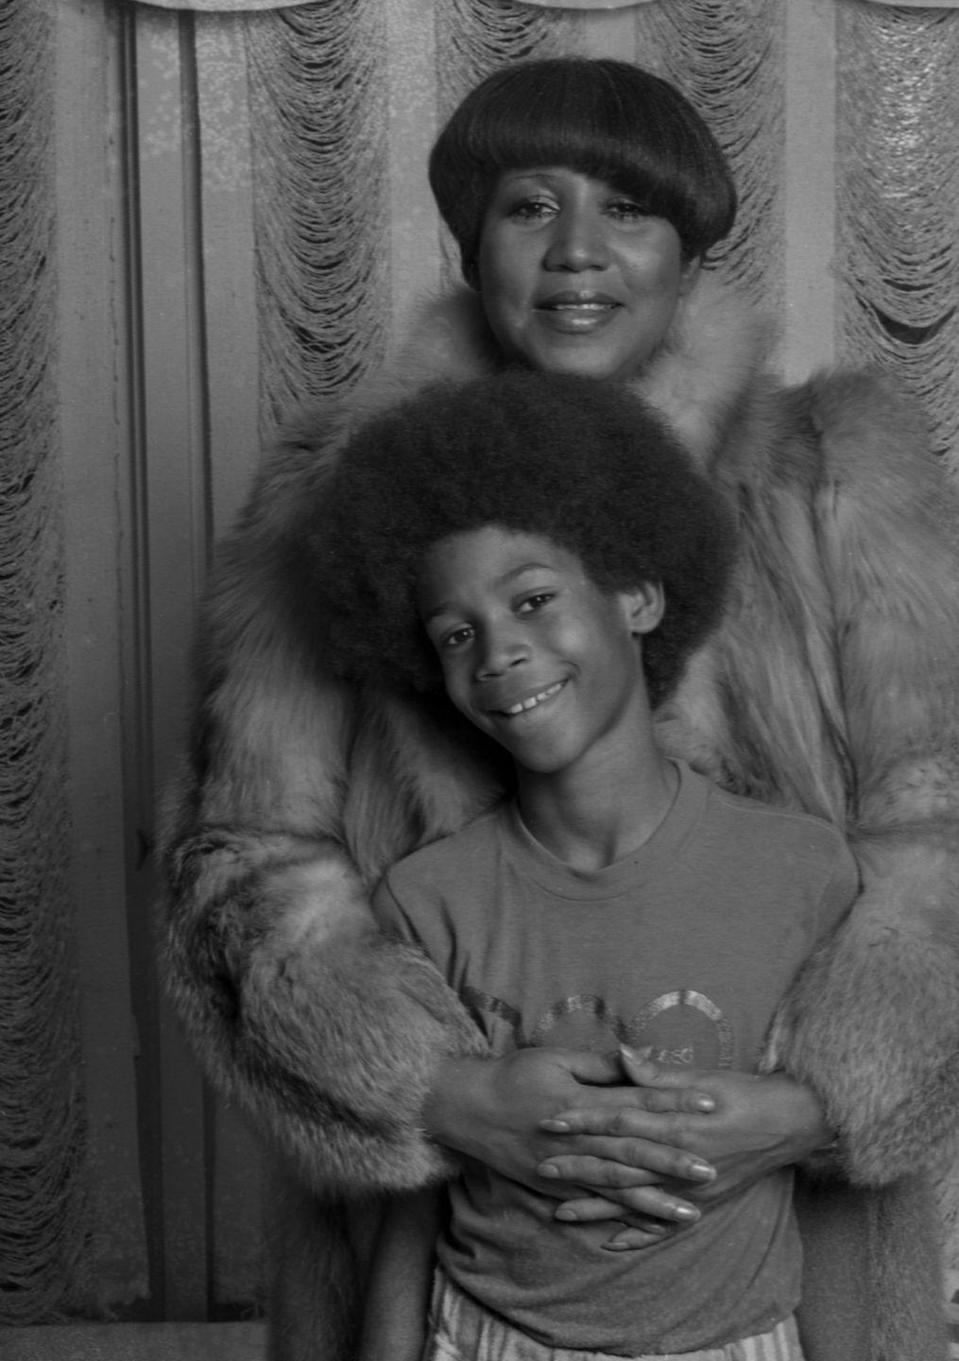 <p>Aretha poses for a photograph with her youngest son, Kecalf Cunningham, in 1981. </p>